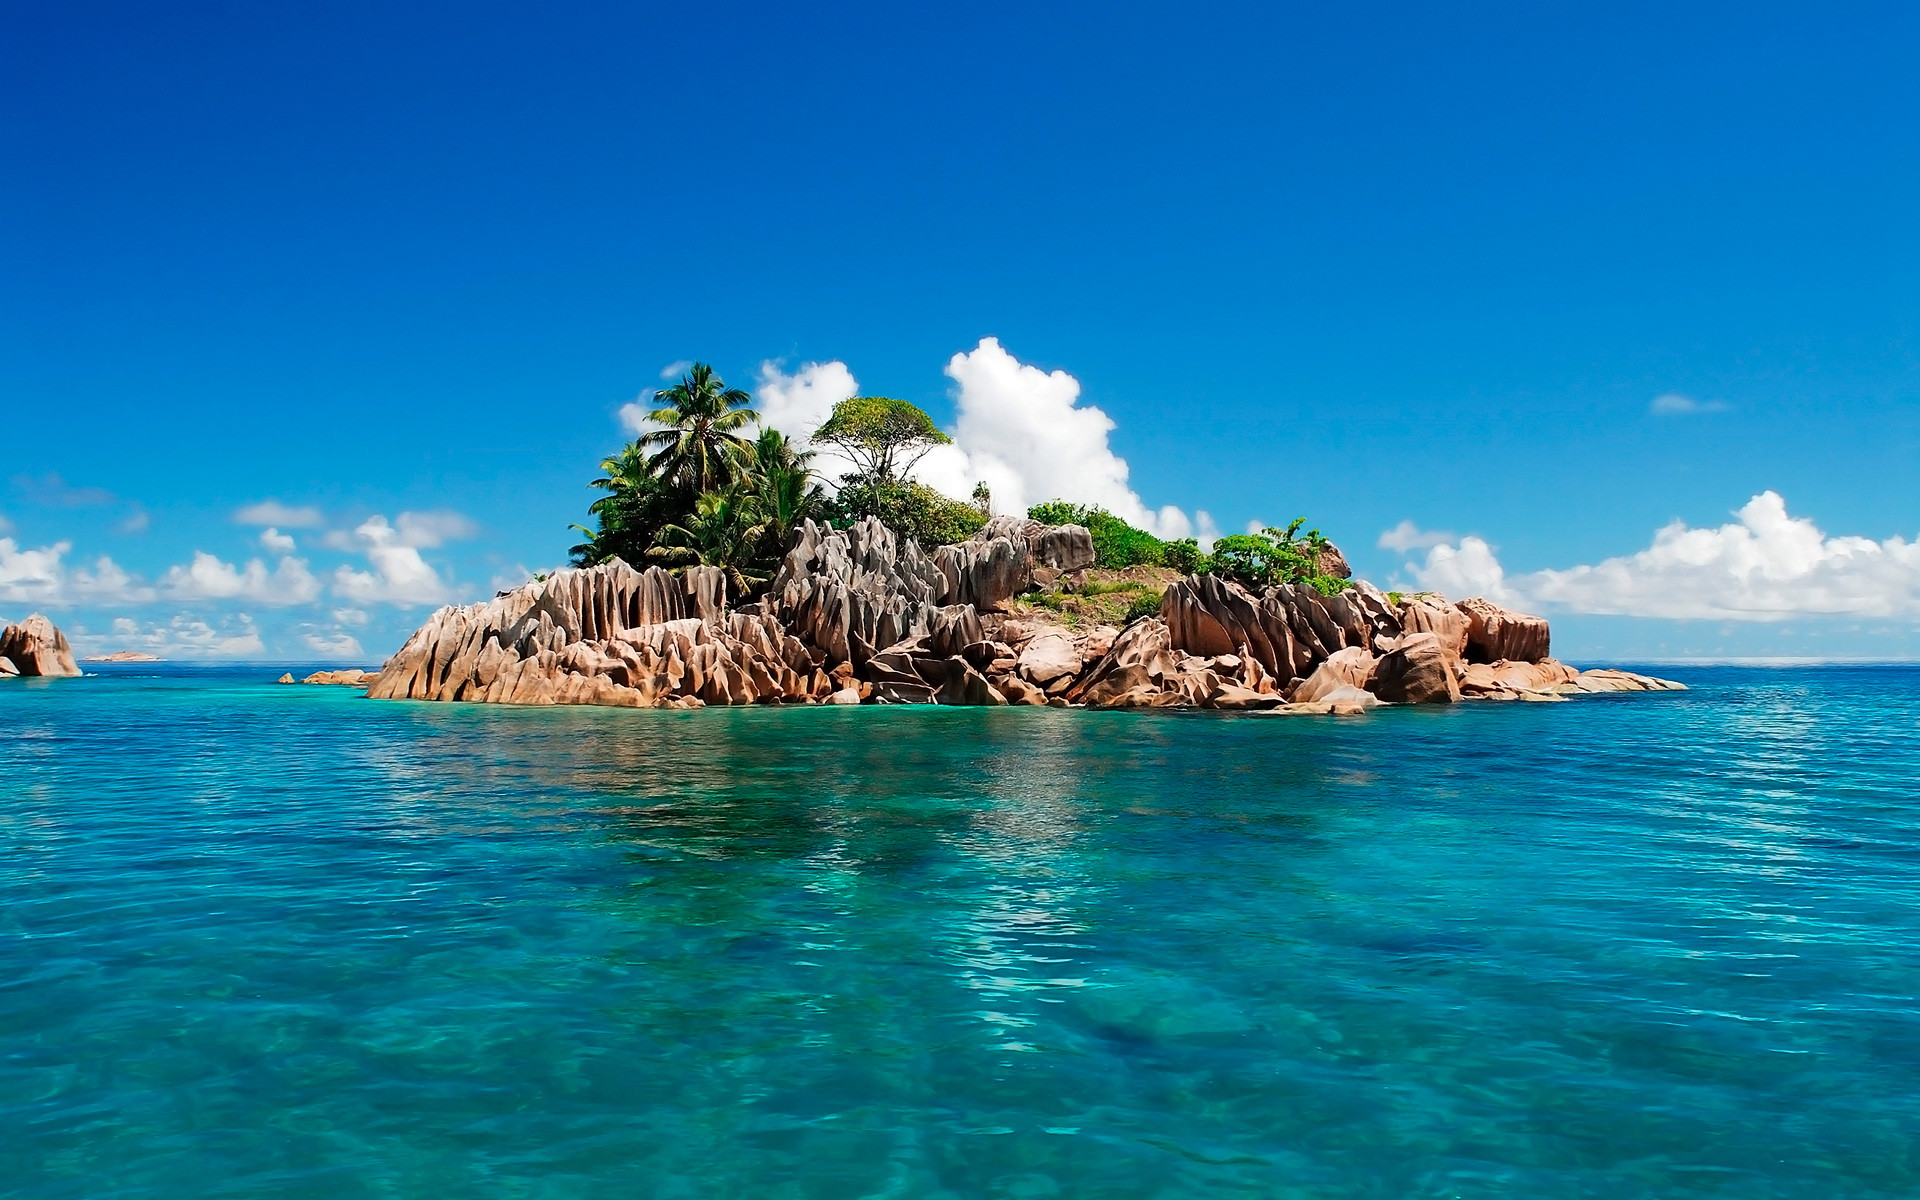 Island Hd Wallpapers 57 Images